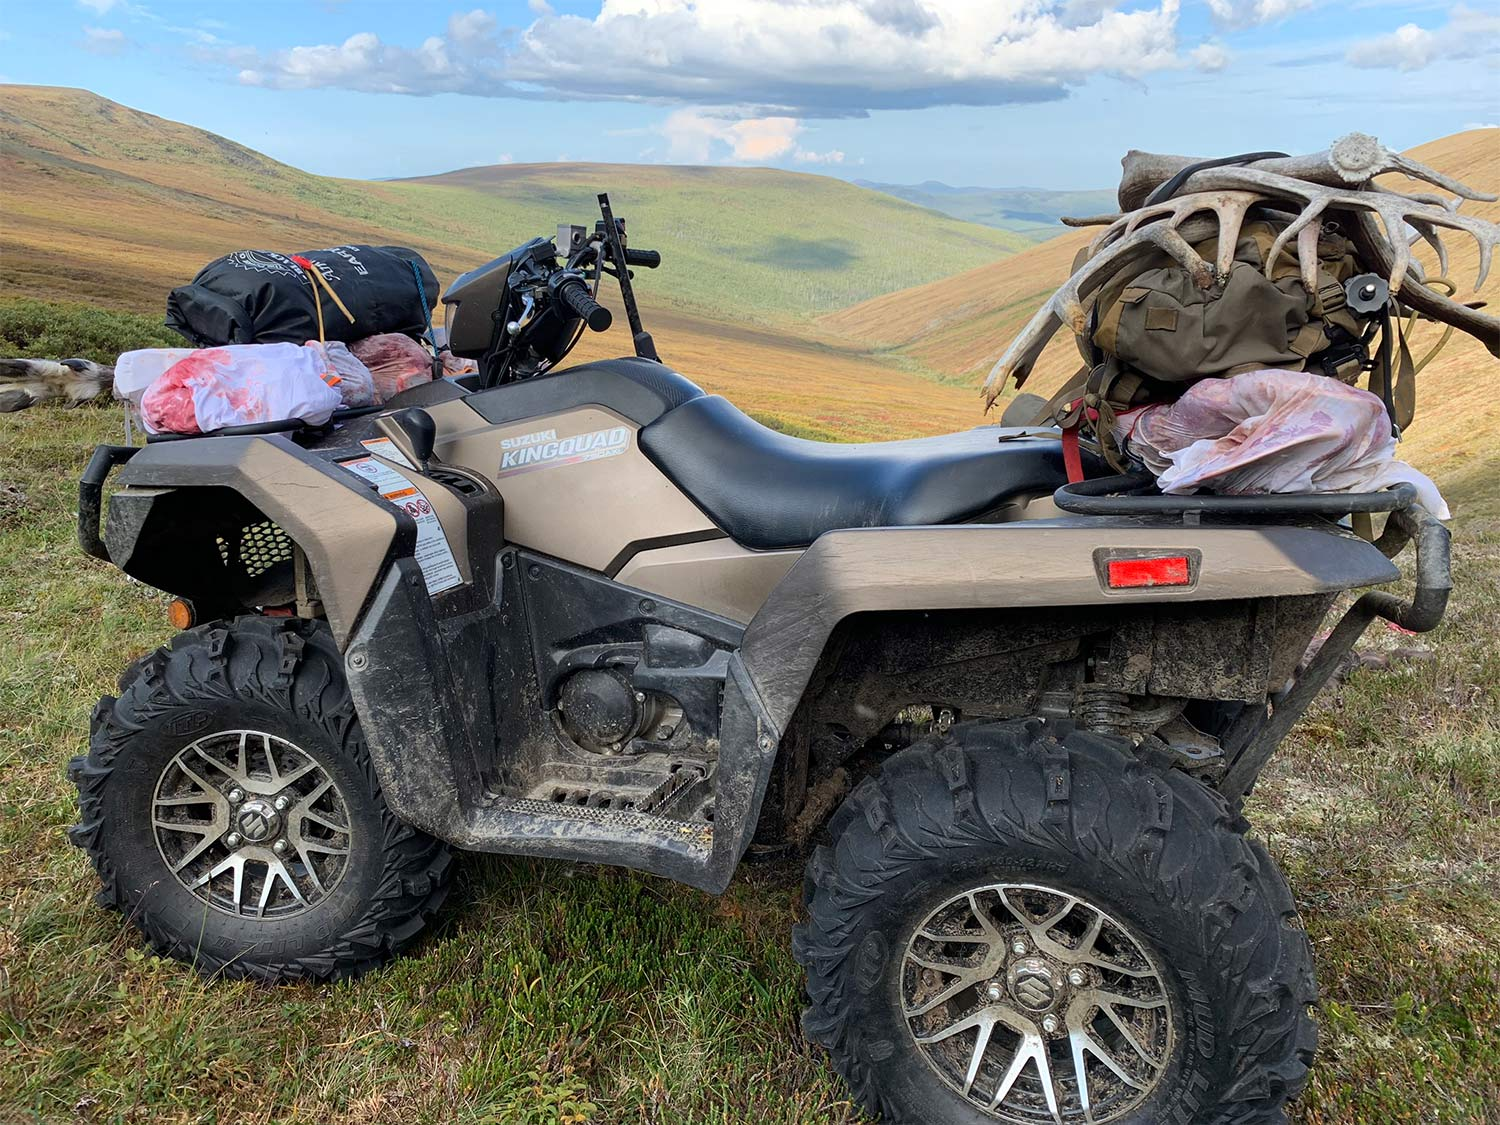 A four-wheeled ATV loaded with hunting gear sits atop a hill with a sprawling view of hills and plains in the background.